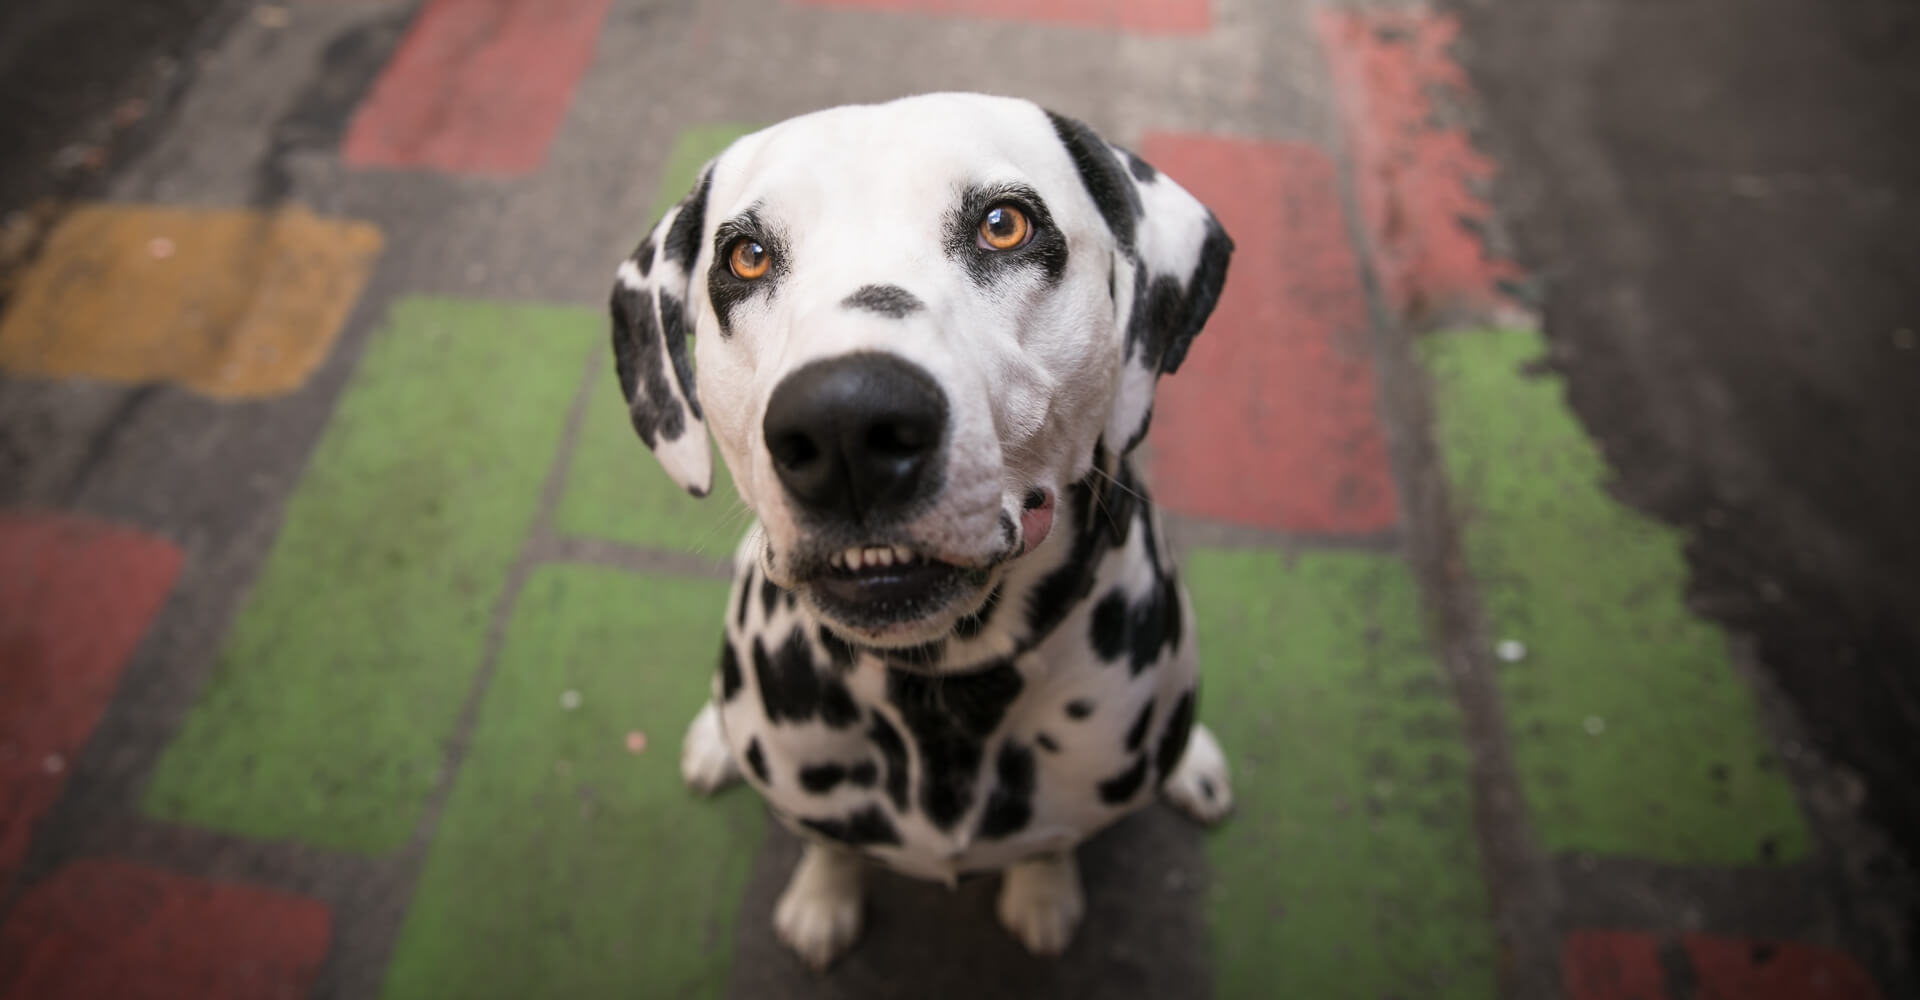 boston dog photographer captures smiling dalmation dog